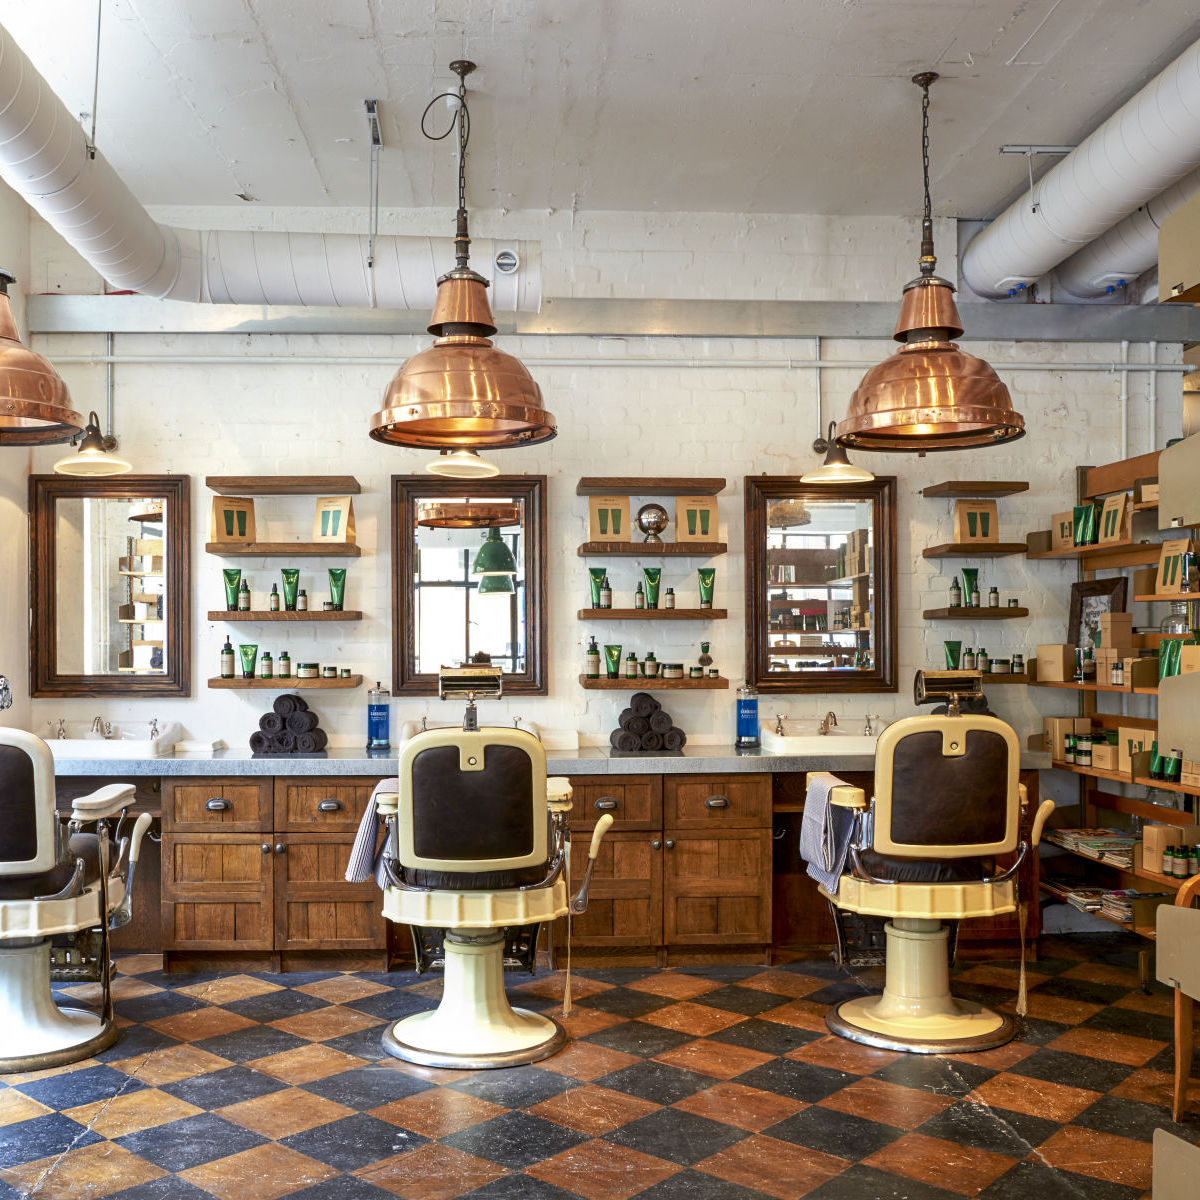 Neville at Barber Parlour